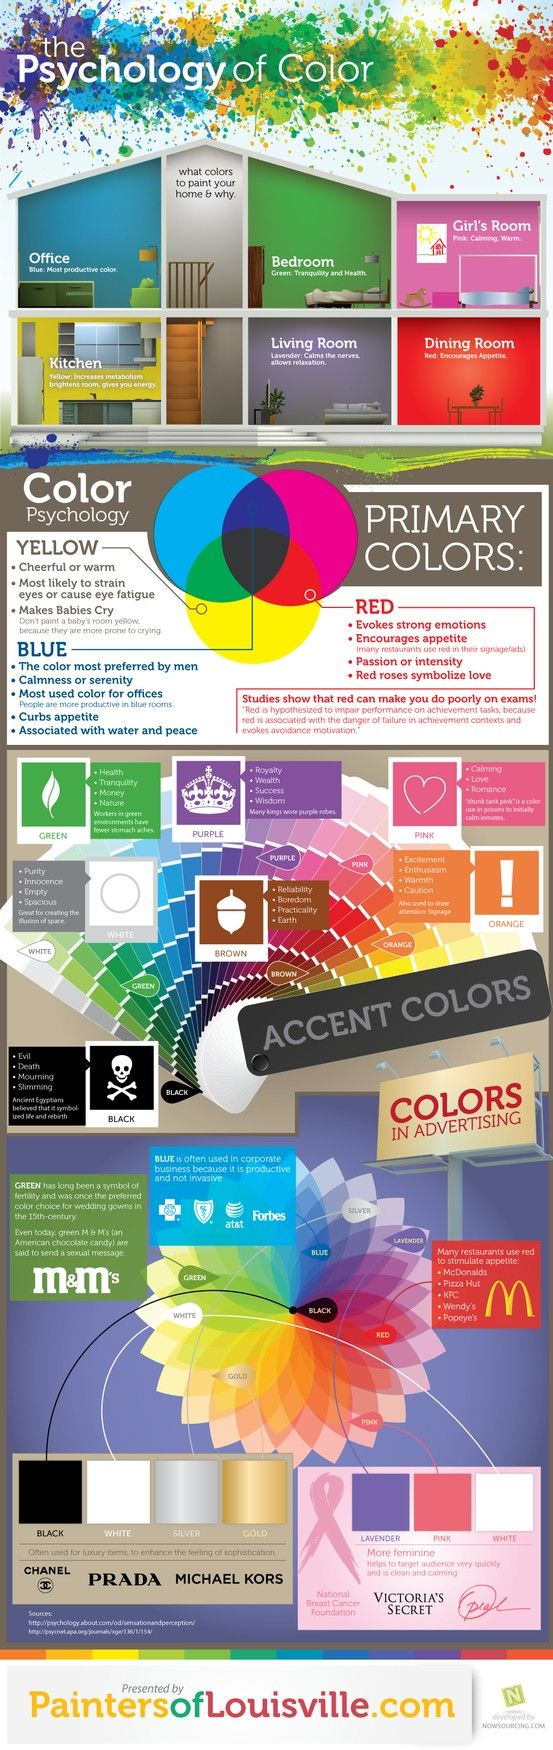 04/09/12 Our prize of the day is 50 dollars in JC Penney Store Credit! This is the perfect infographic guide for anybody who is looking to improve the look of their home decor. If you aren't sure about what colors you should use to paint or decorate with, this is PERFECT!